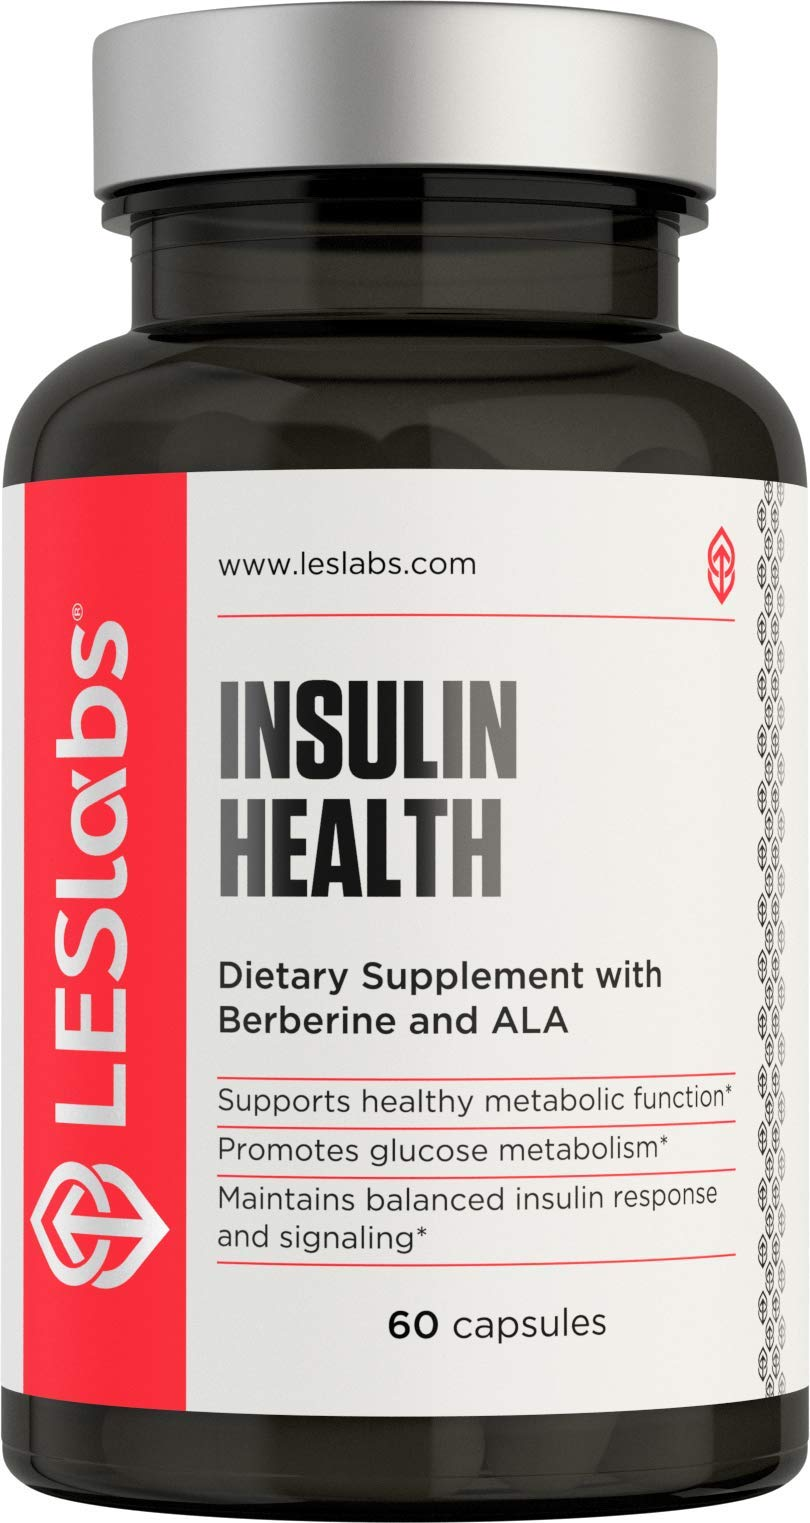 LES Labs Insulin Health, Natural Supplement for Metabolic Support, Blood Sugar & Weight Management, 60 Capsules